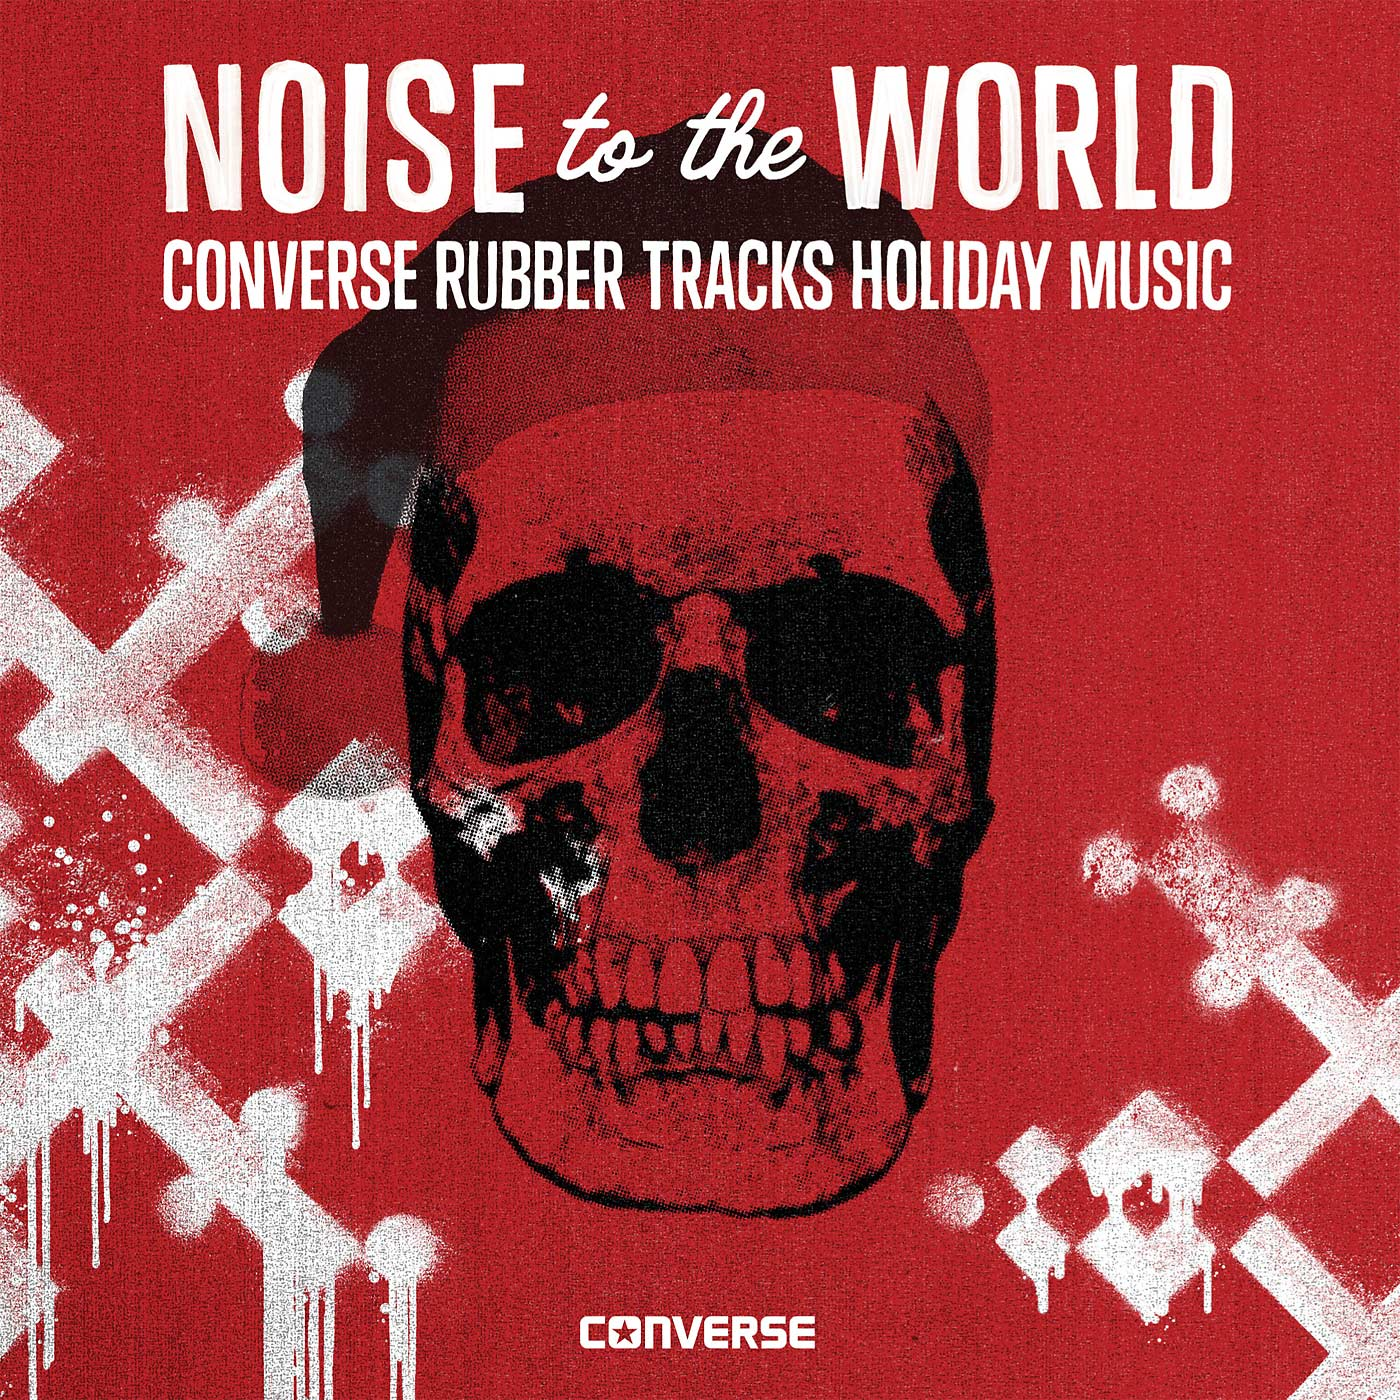 Converse Noise to the World